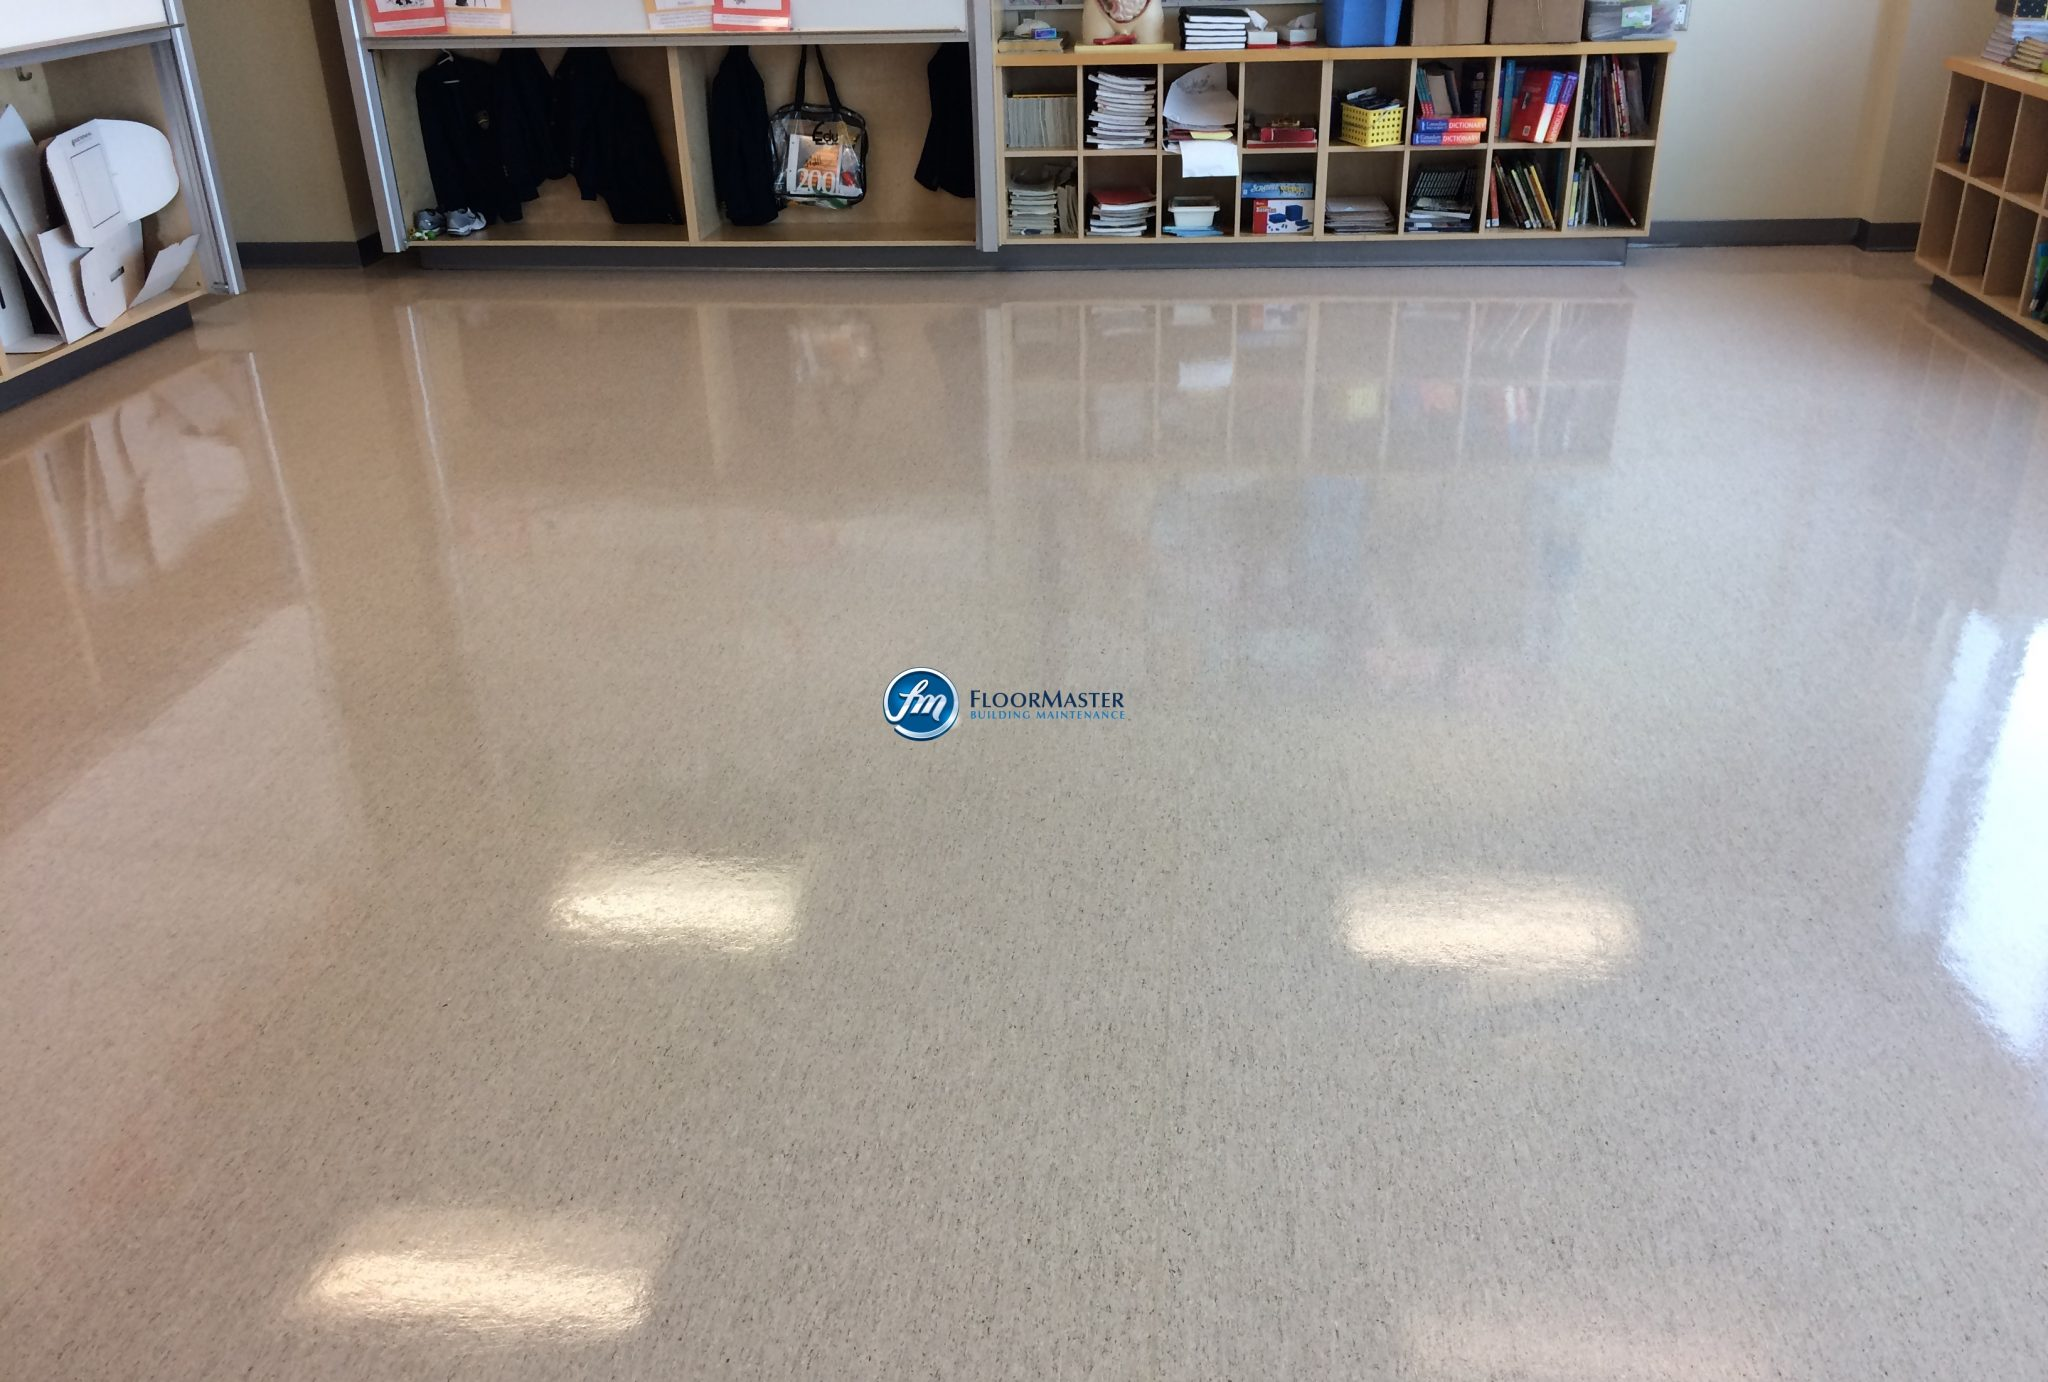 Floor Master Building Maintenance Stripping And Waxing